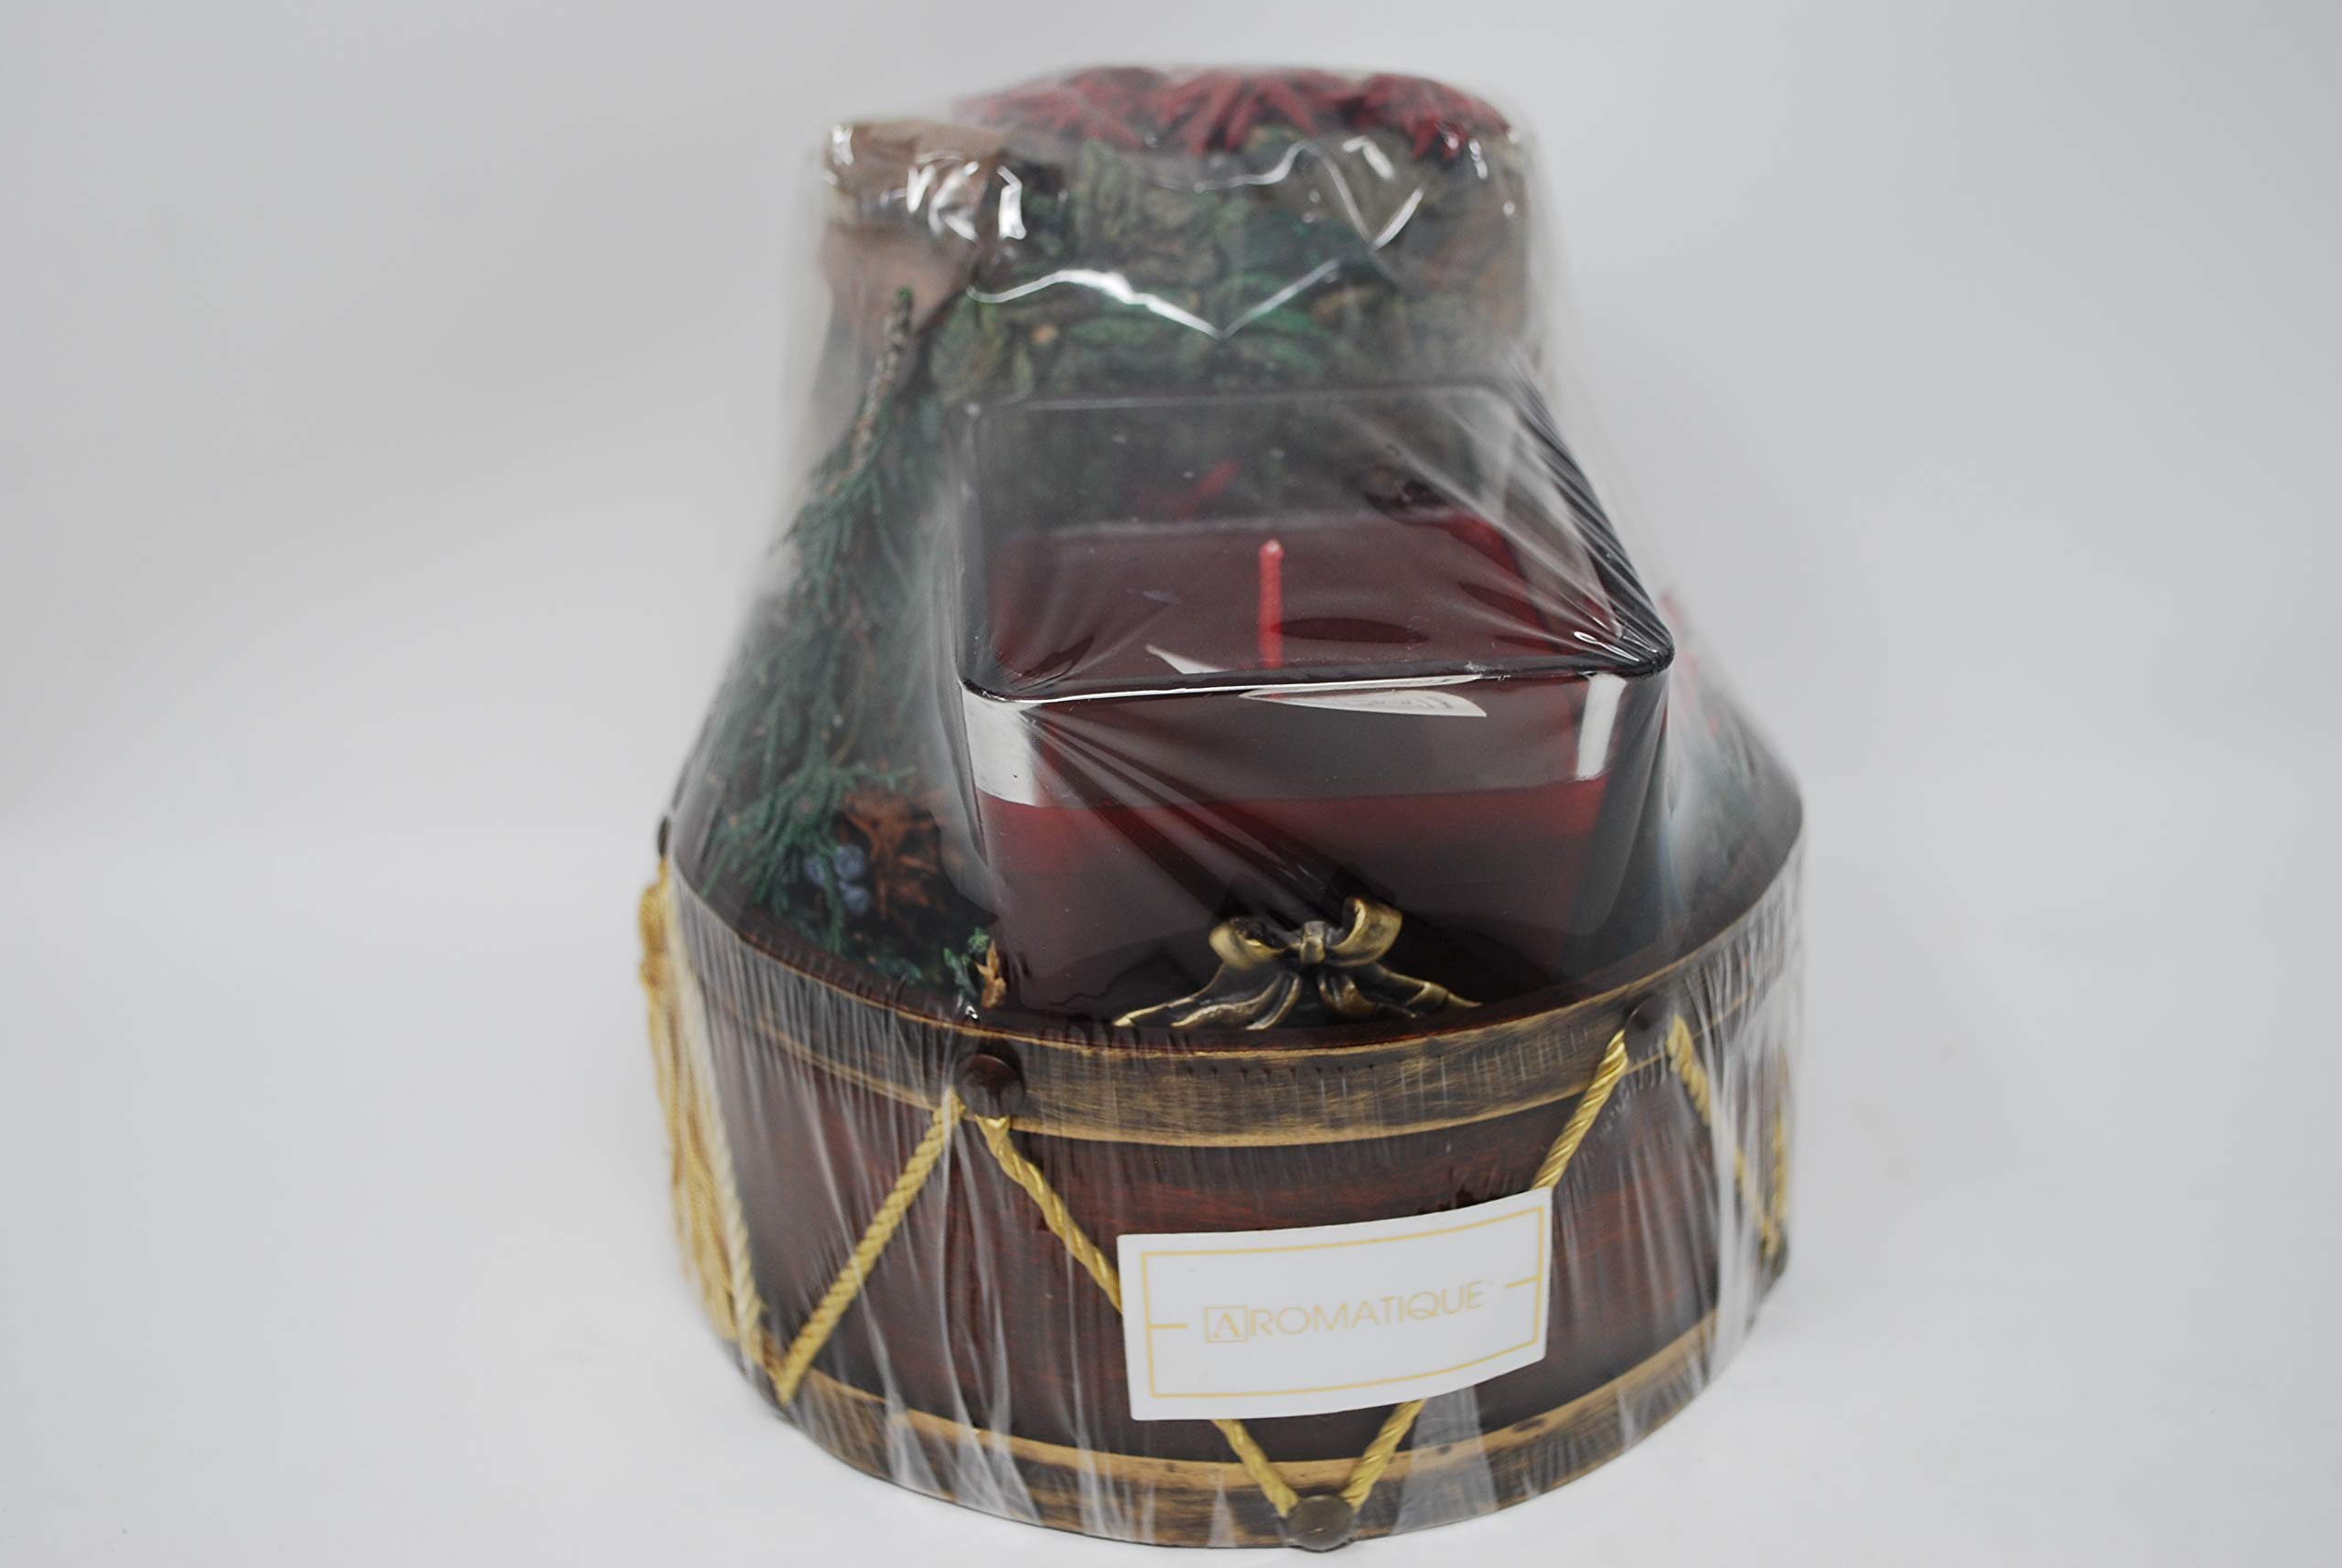 Aromatique The Smell of Christmas Potpourri and Candle Gift Set in Drum Basket by Aromatique